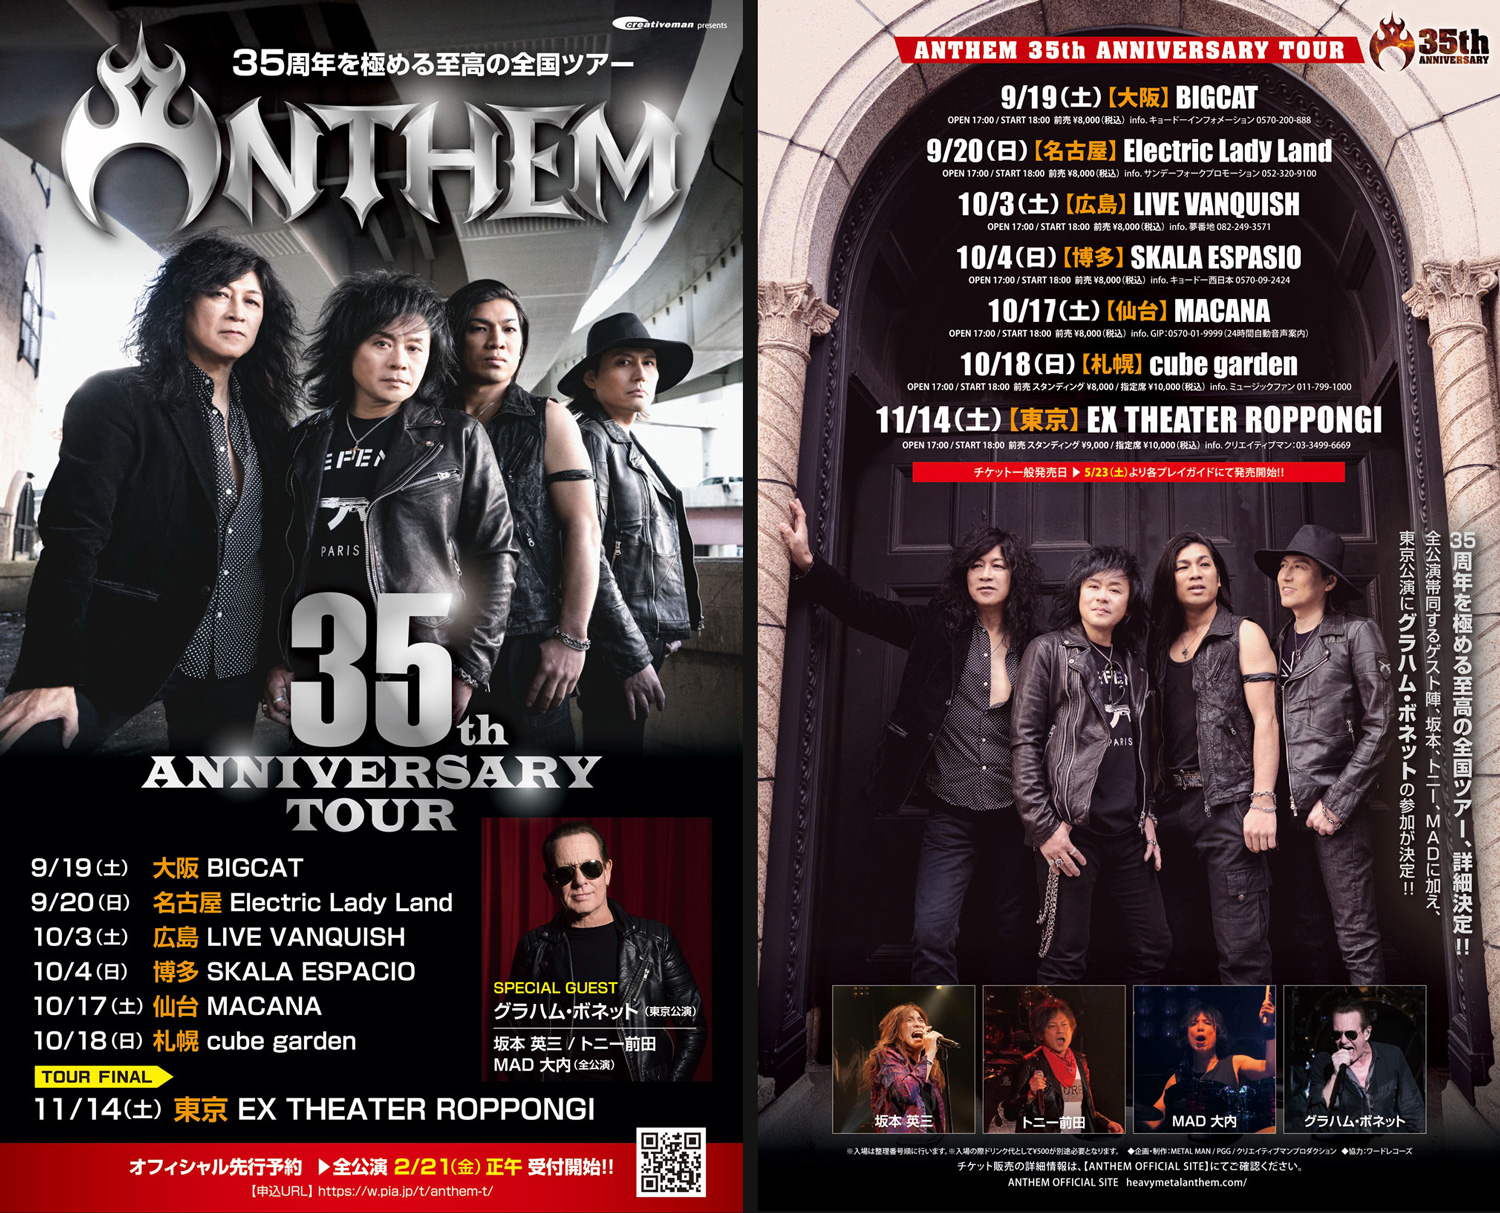 ANTHEM 35th ANNIVERSARY TOUR [福岡]